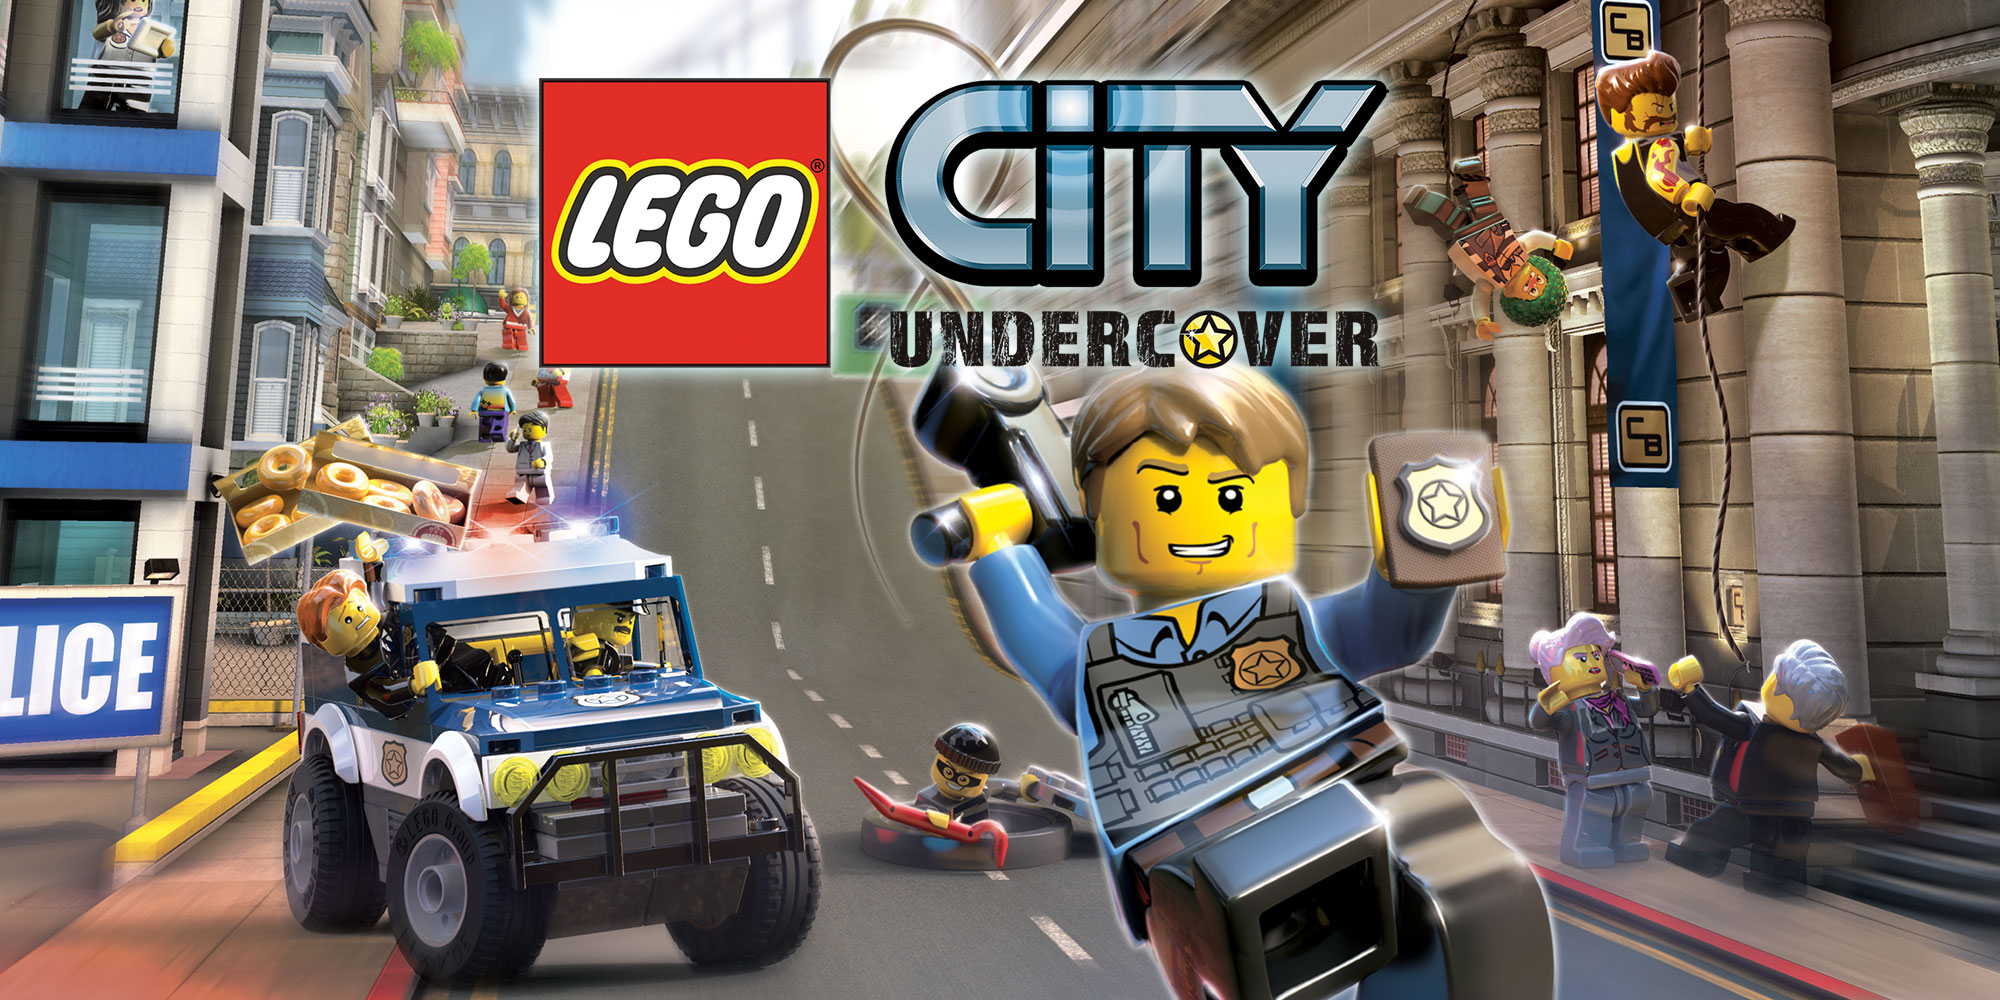 lego city undercover wii u games nintendo. Black Bedroom Furniture Sets. Home Design Ideas